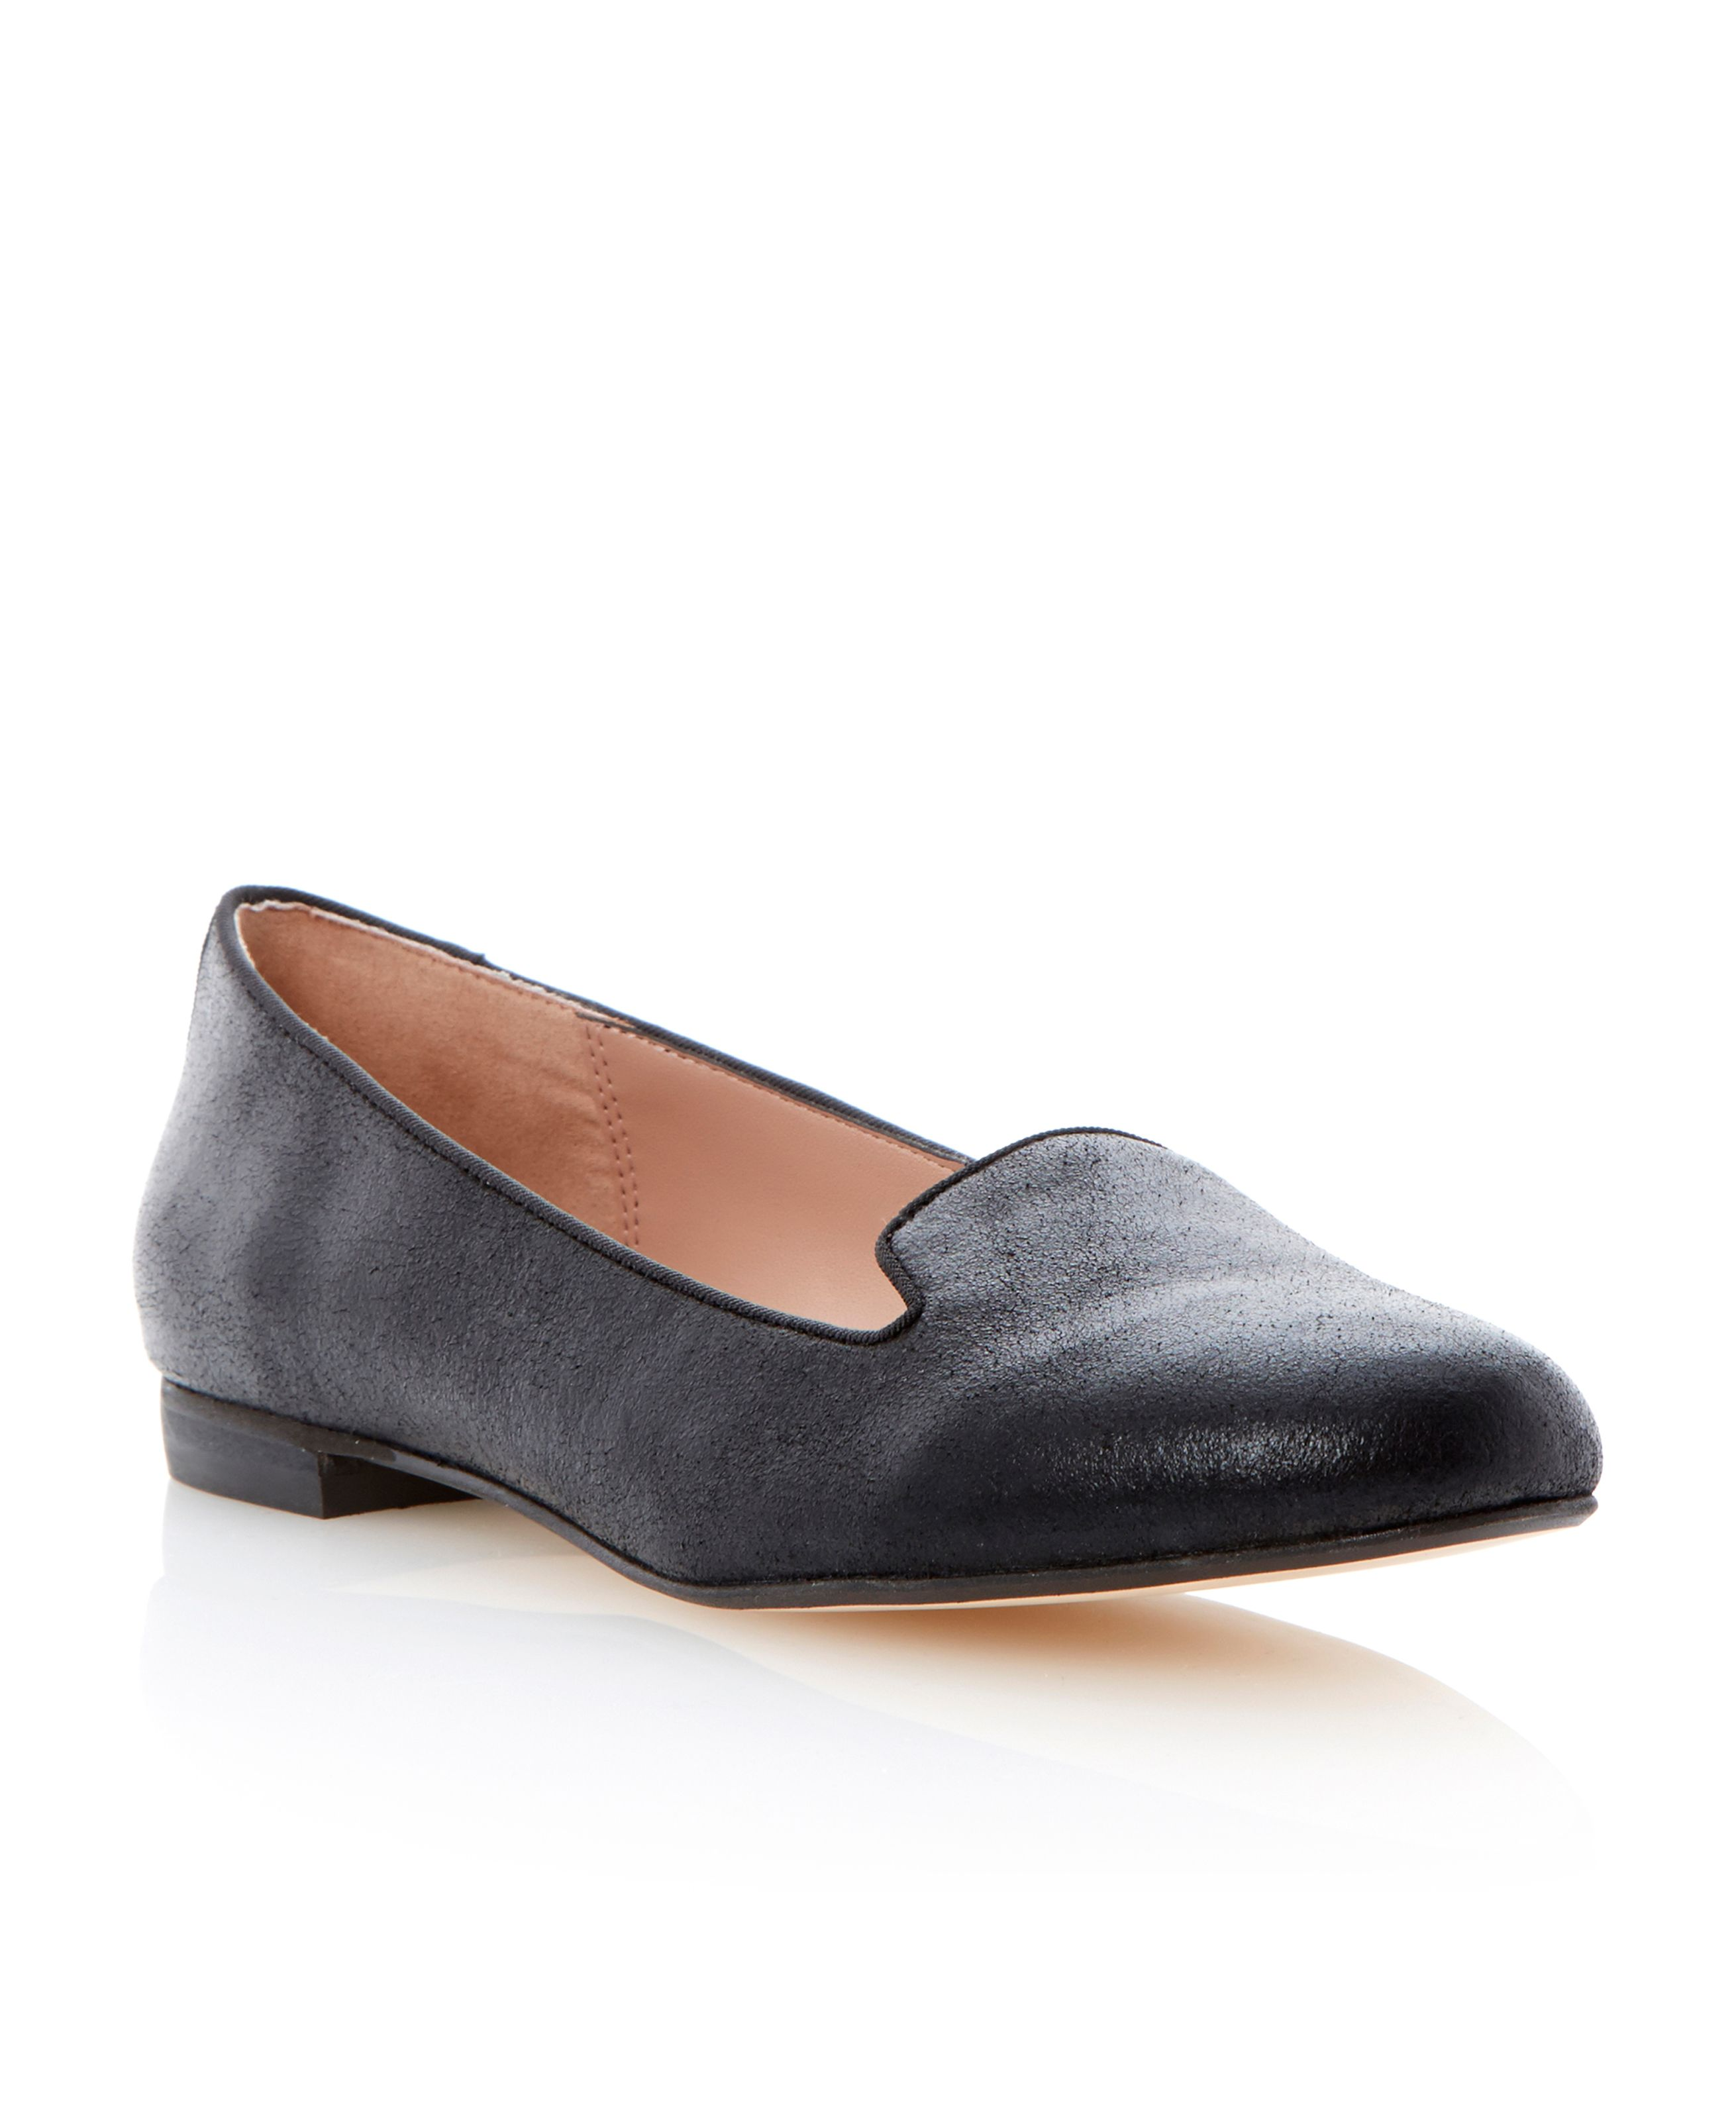 Limbo kid suede loafer shoes